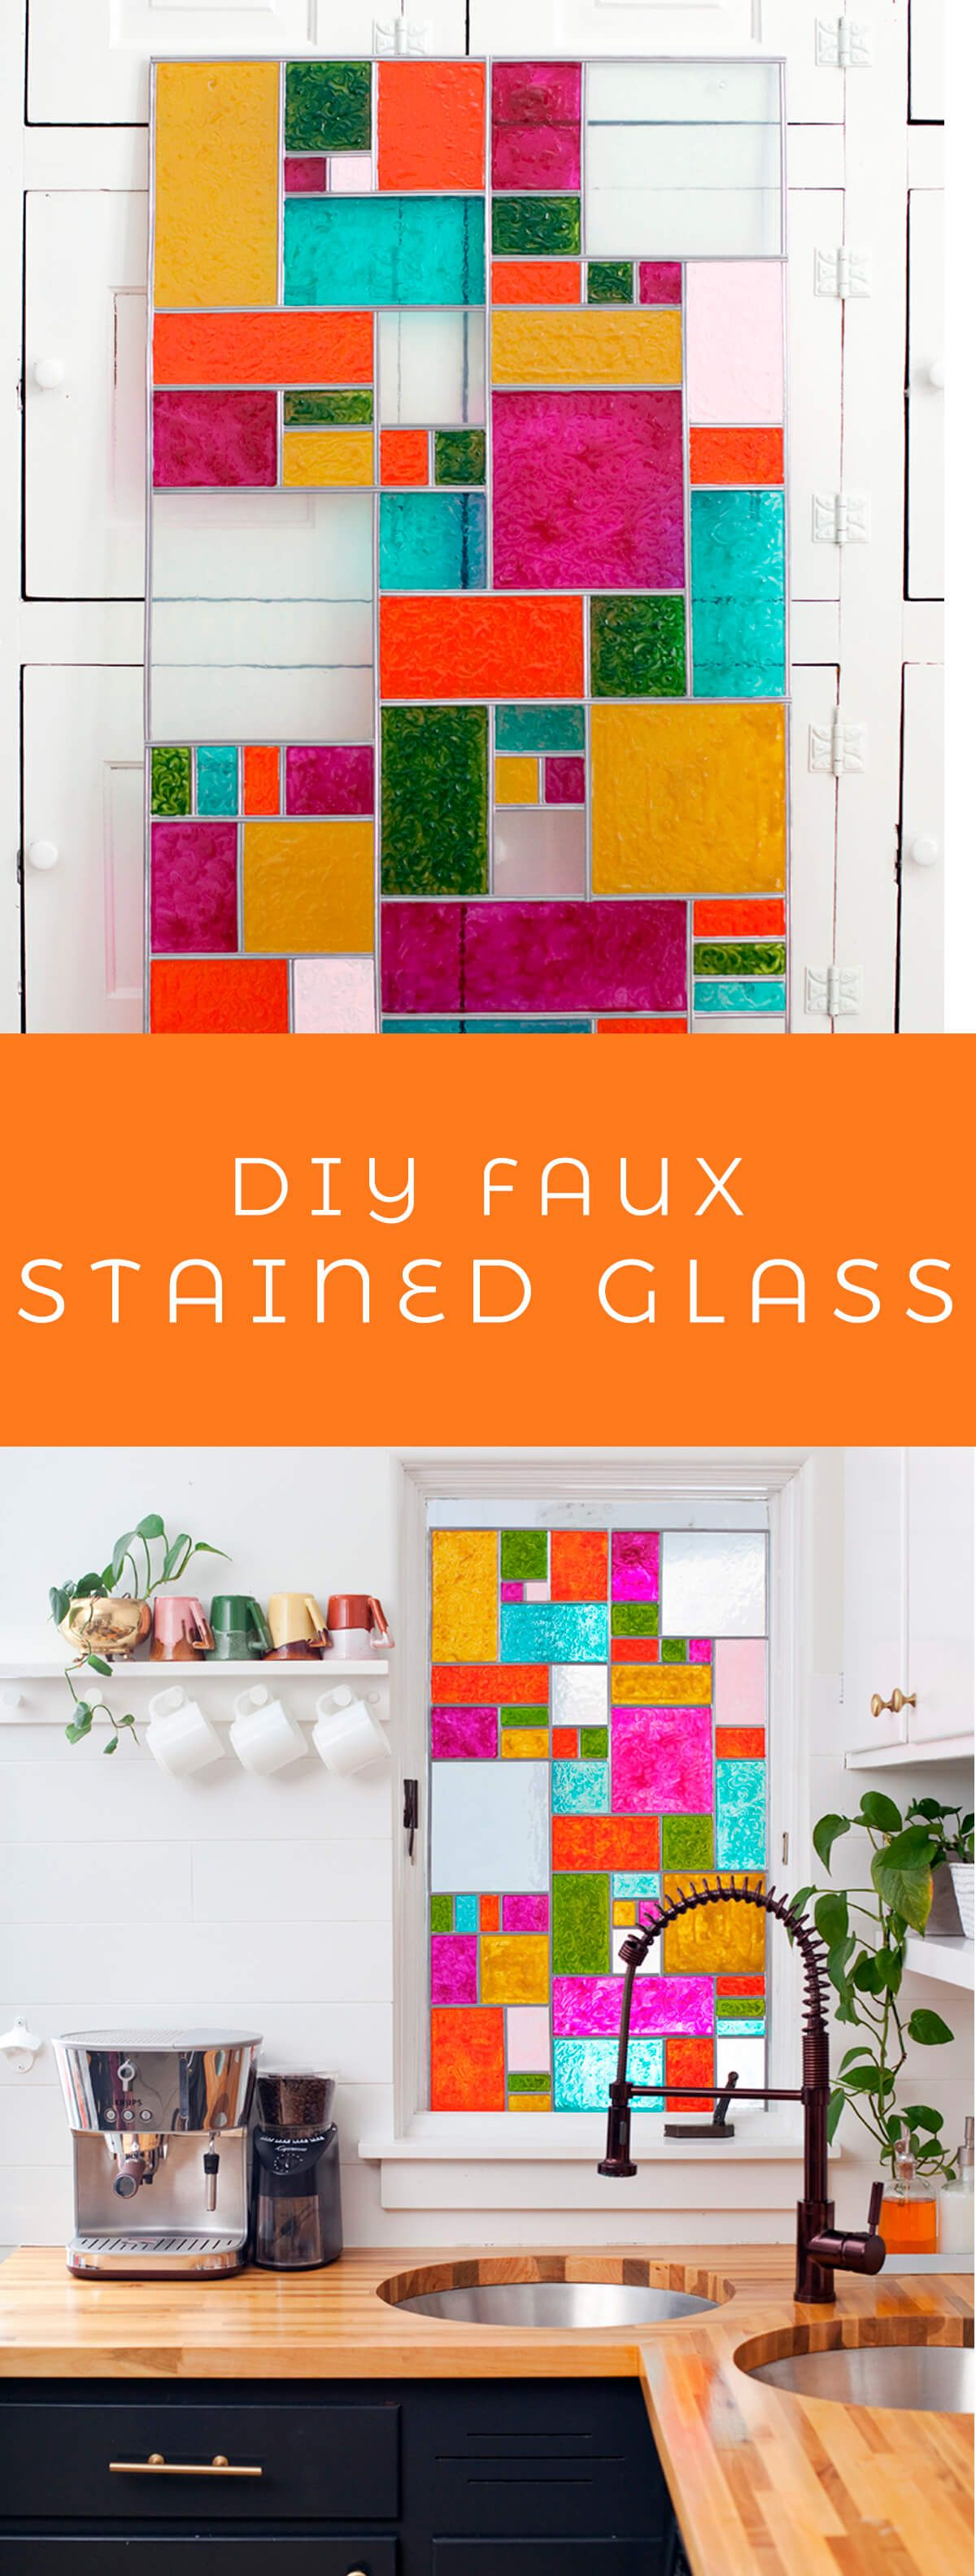 DIY Faux Stained Glass – A Beautiful Mess